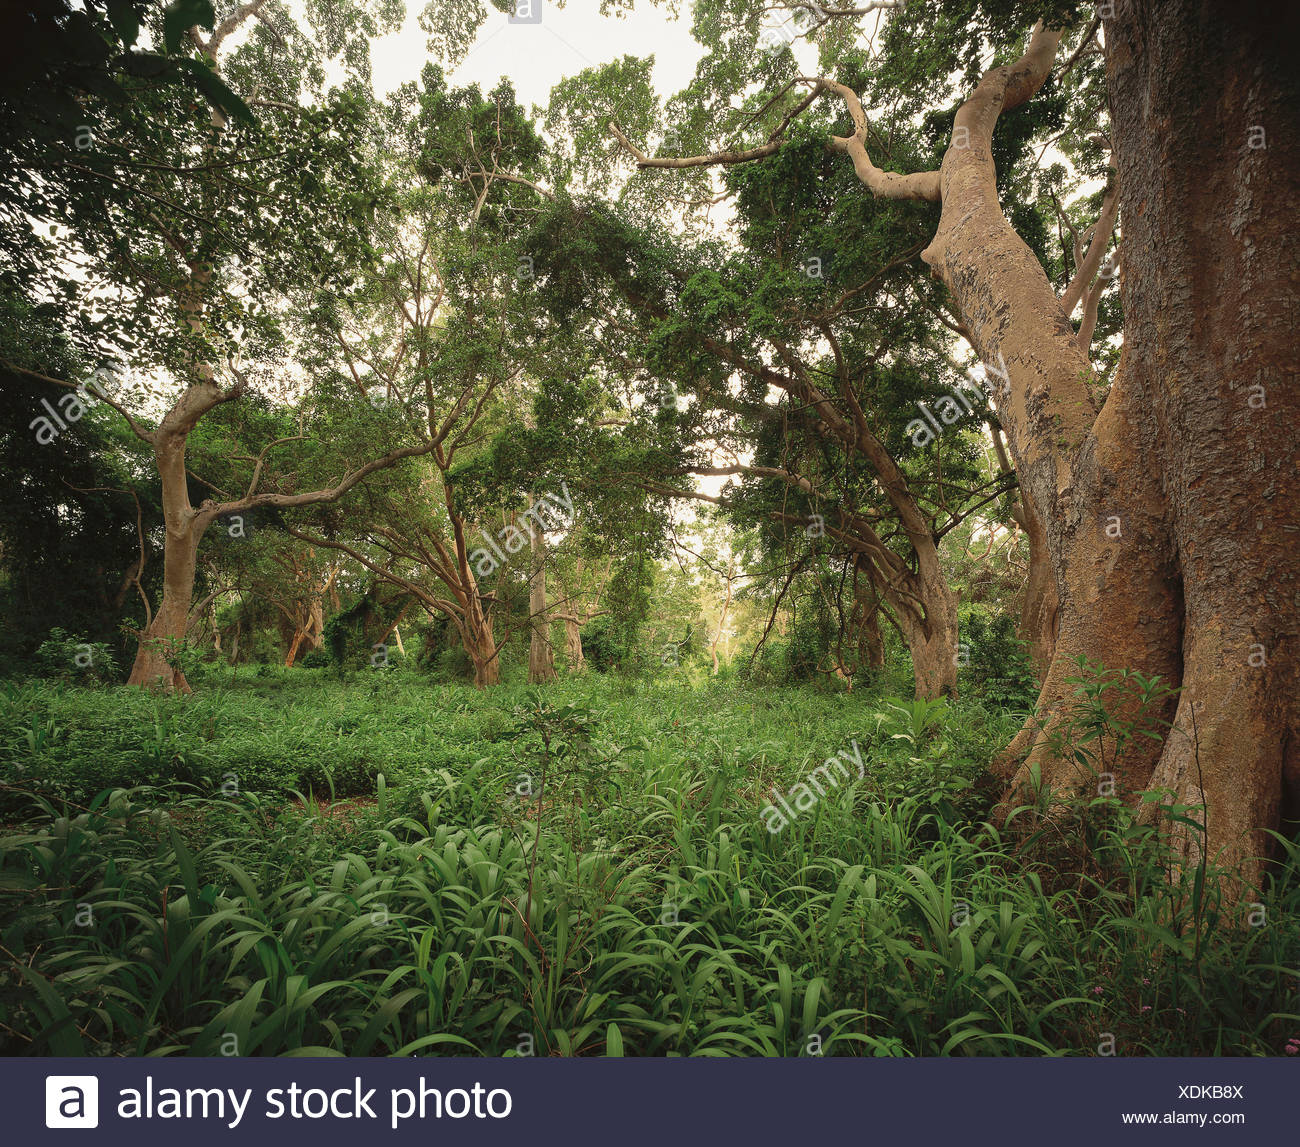 Forest scene, Mkuze Game Reserve, Kwa-Zulu Natal, South Africa, Africa. - Stock Image